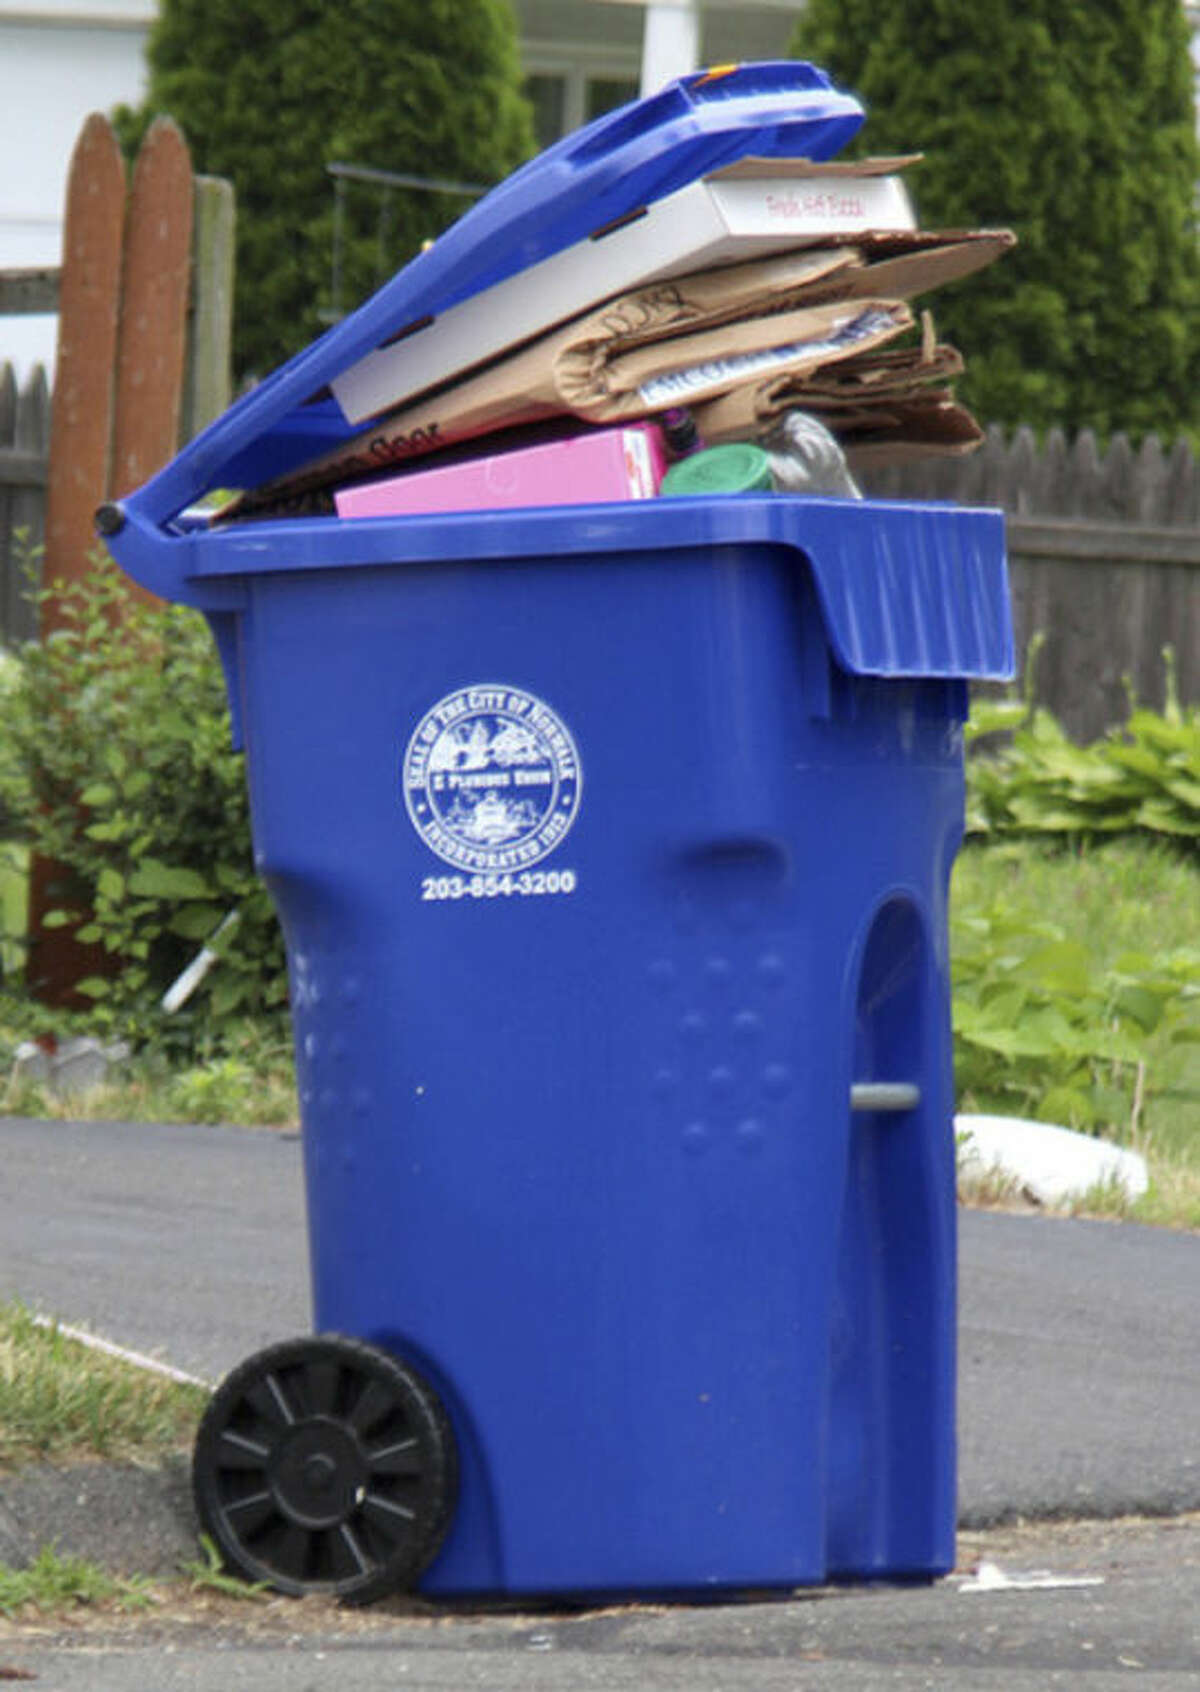 Hour photo / Chris Bosak One of the new large single-stream recycling bins in Norwalk.